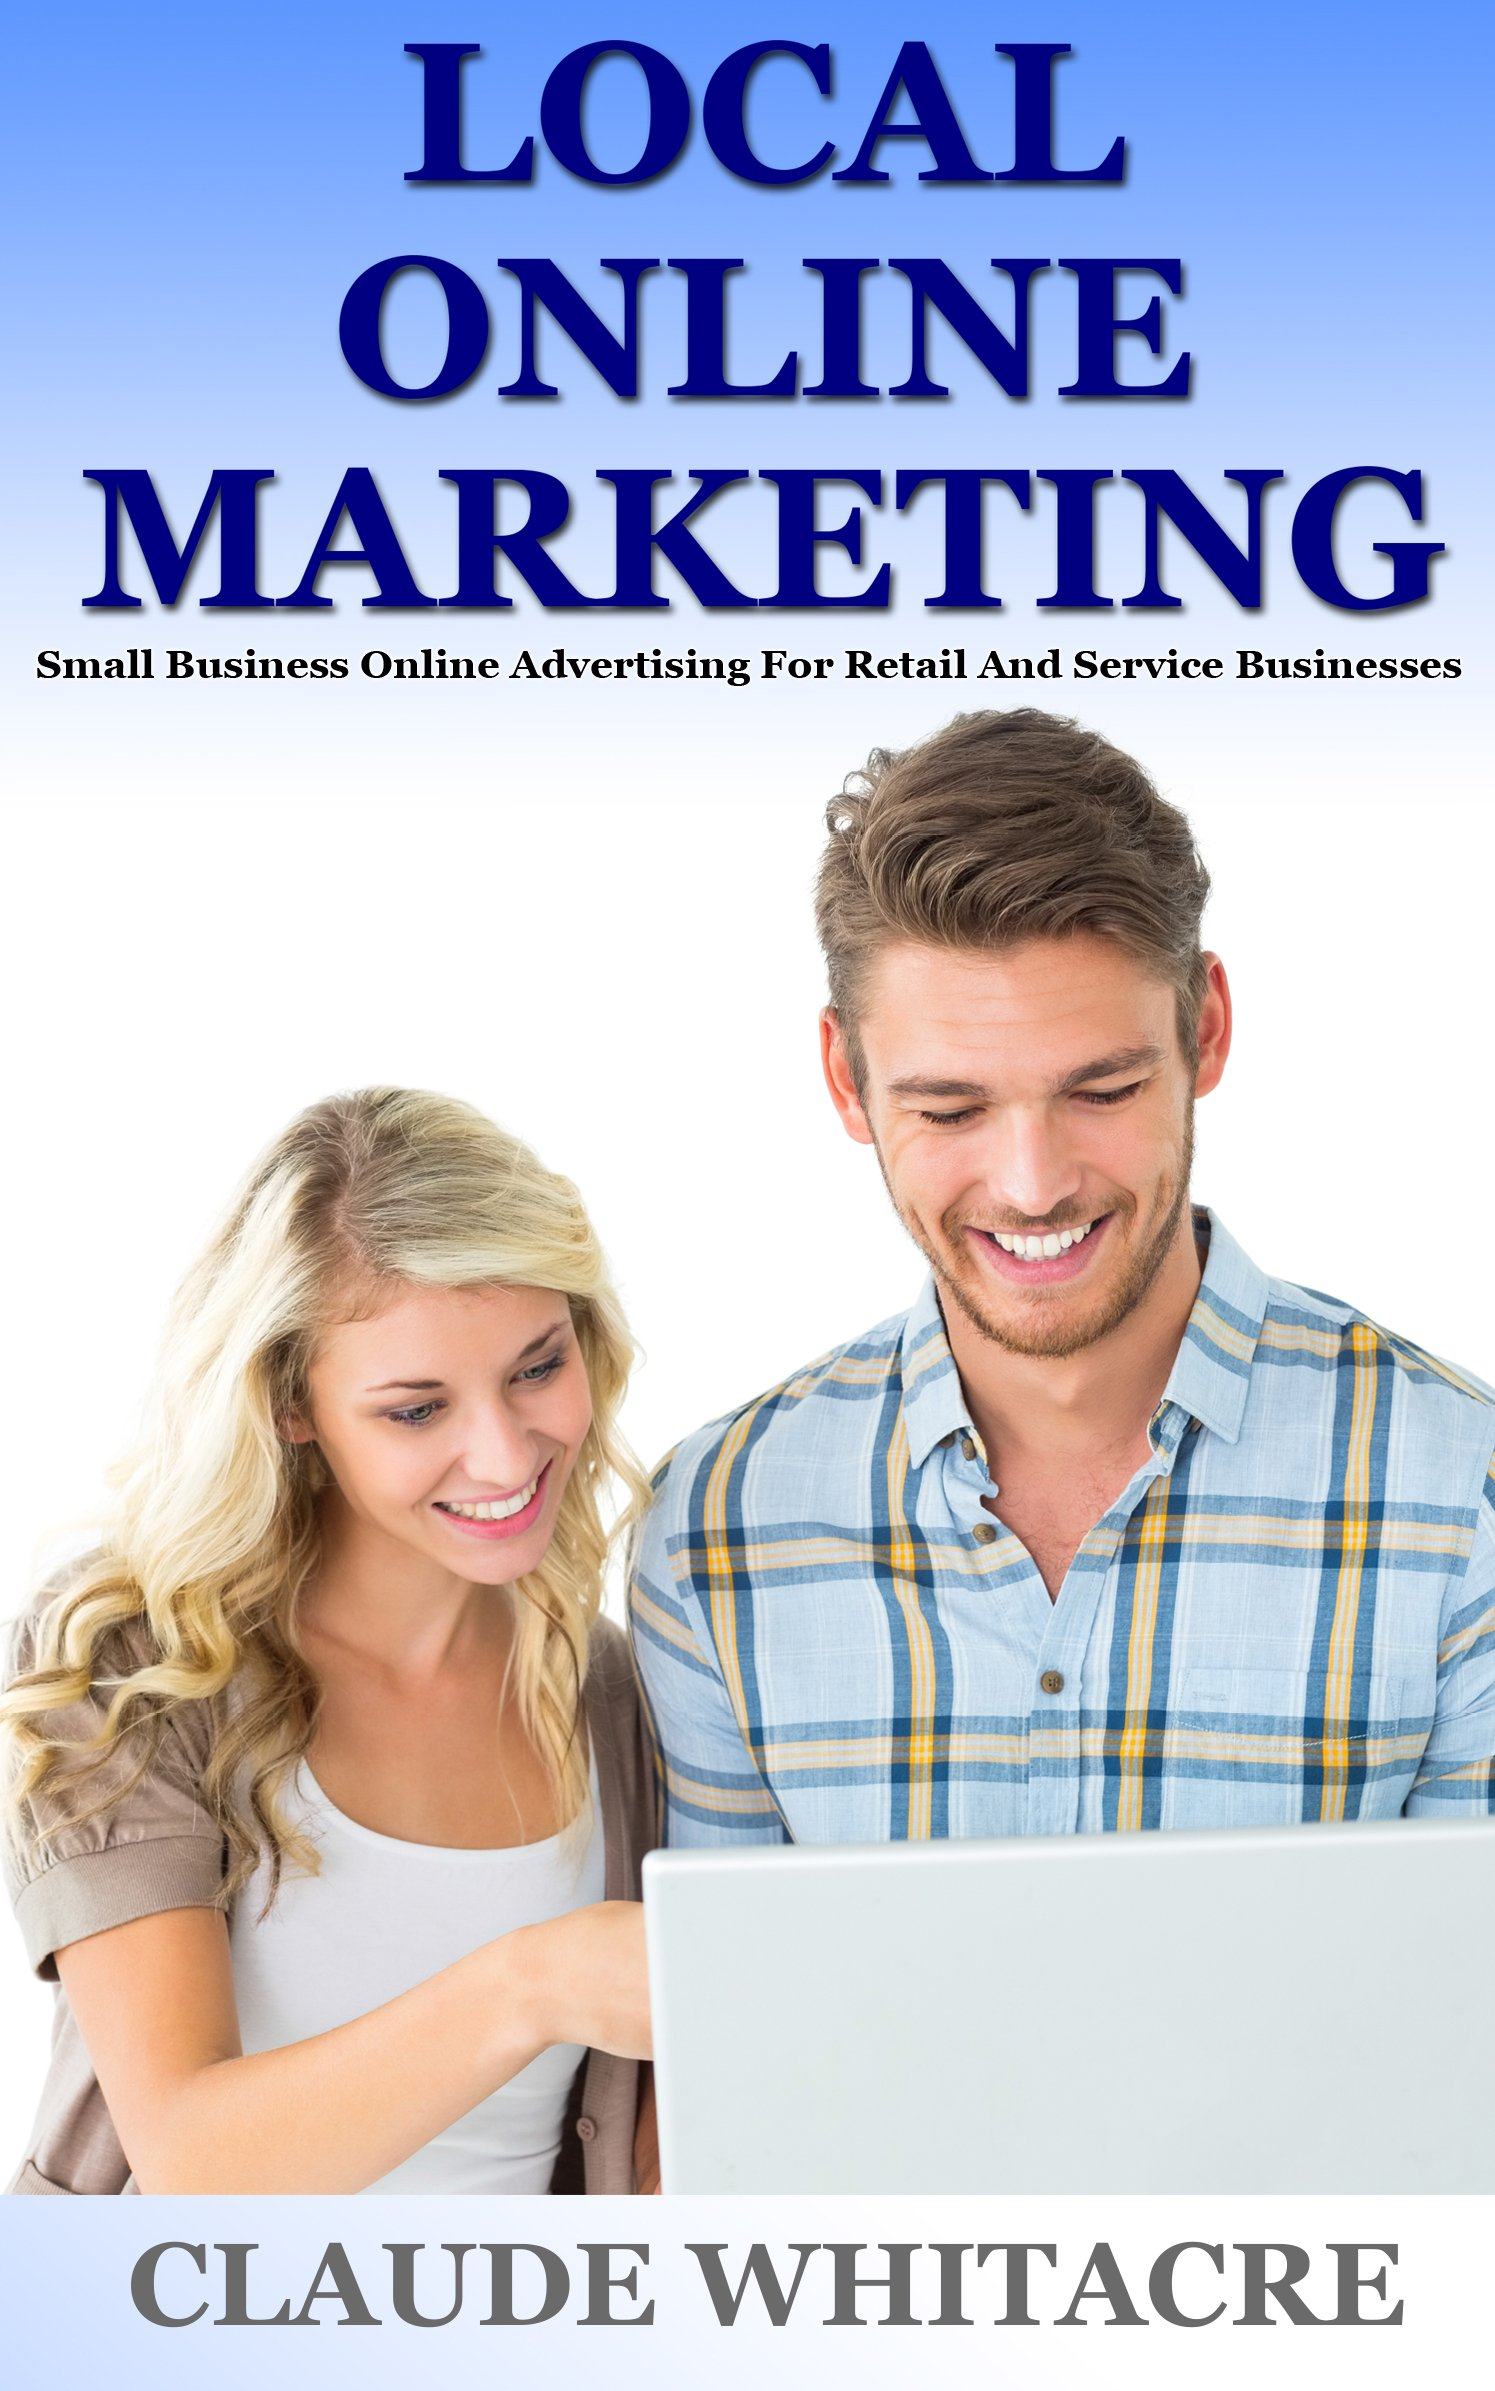 Local Online Marketing: Small Business Online Advertising For Retail And Service Businesses: (Local Search, Video Marketing, Content Marketing, & Websites ... Local Retail Stores & Service Businesses)